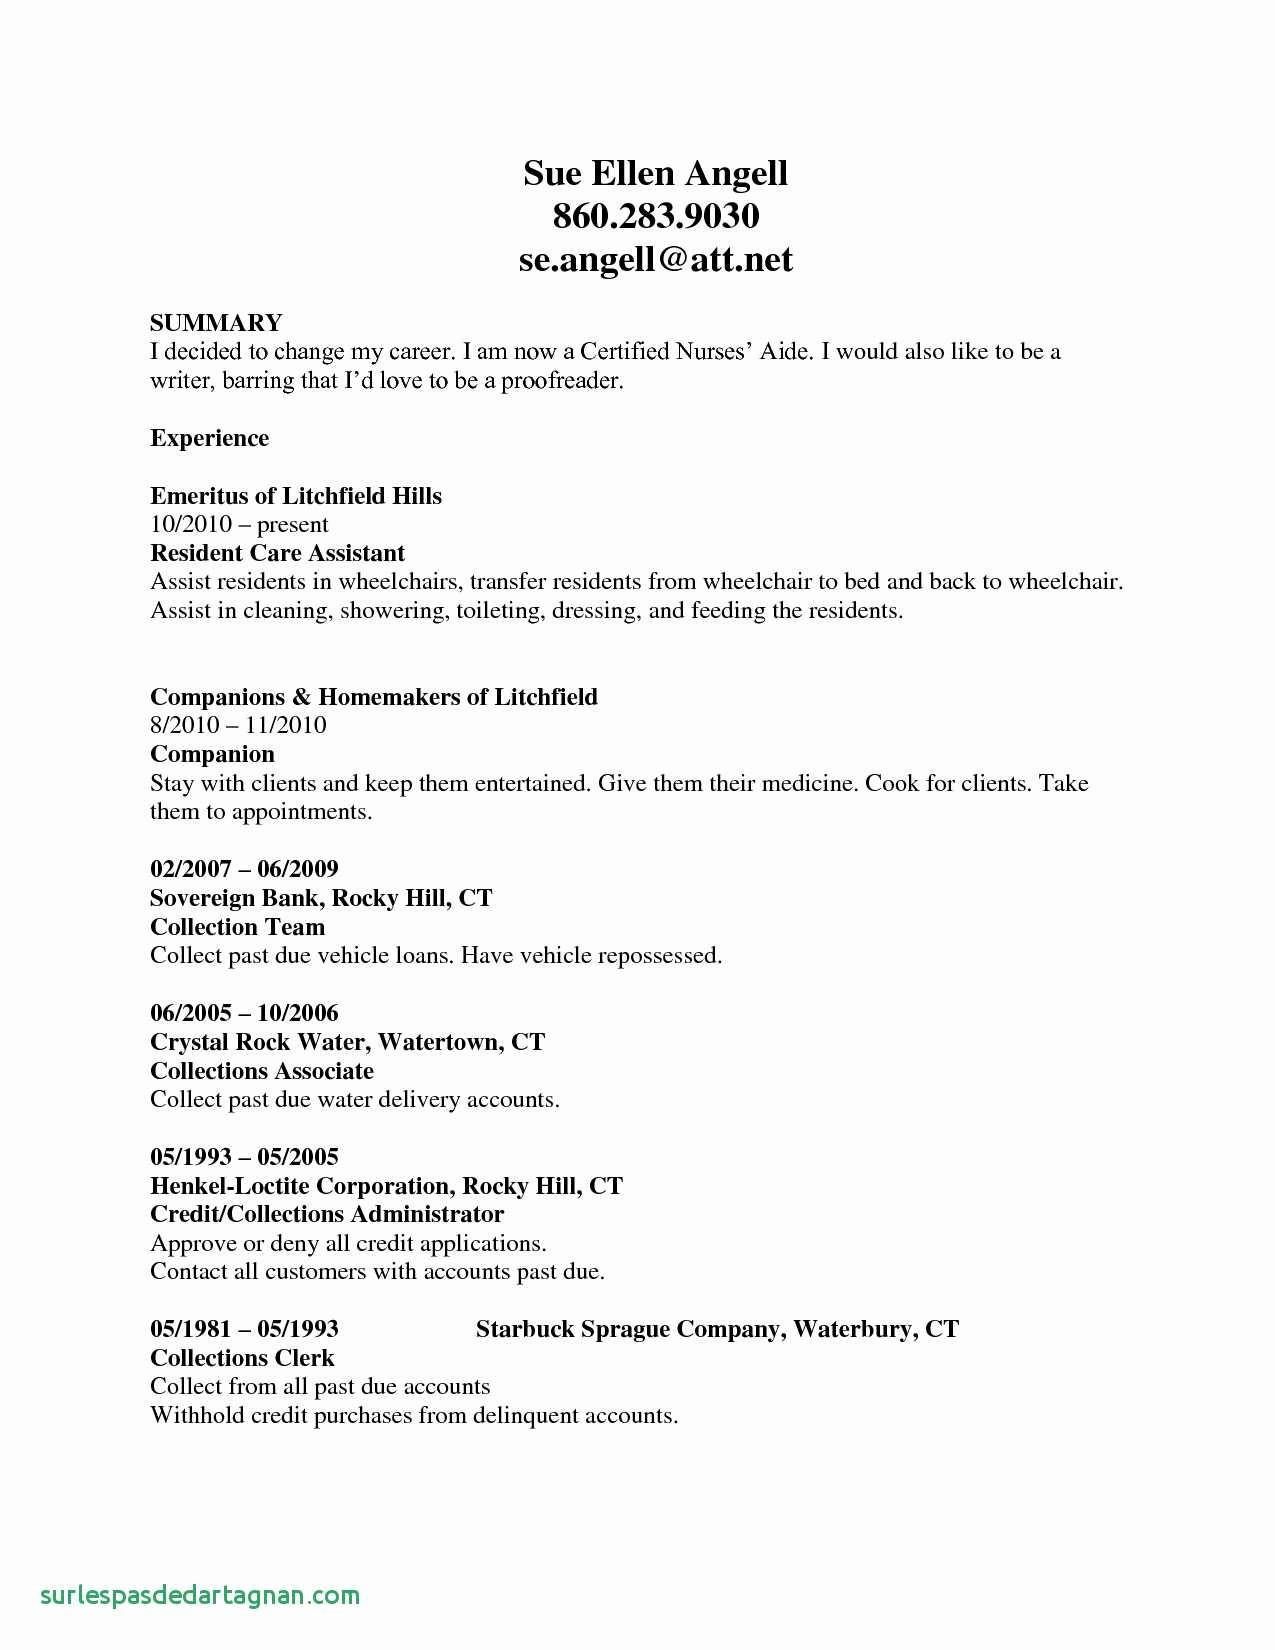 College Transfer Resume - Entry Level Cna Resume Inspirationa Cna Resume for Hospital Good Rn